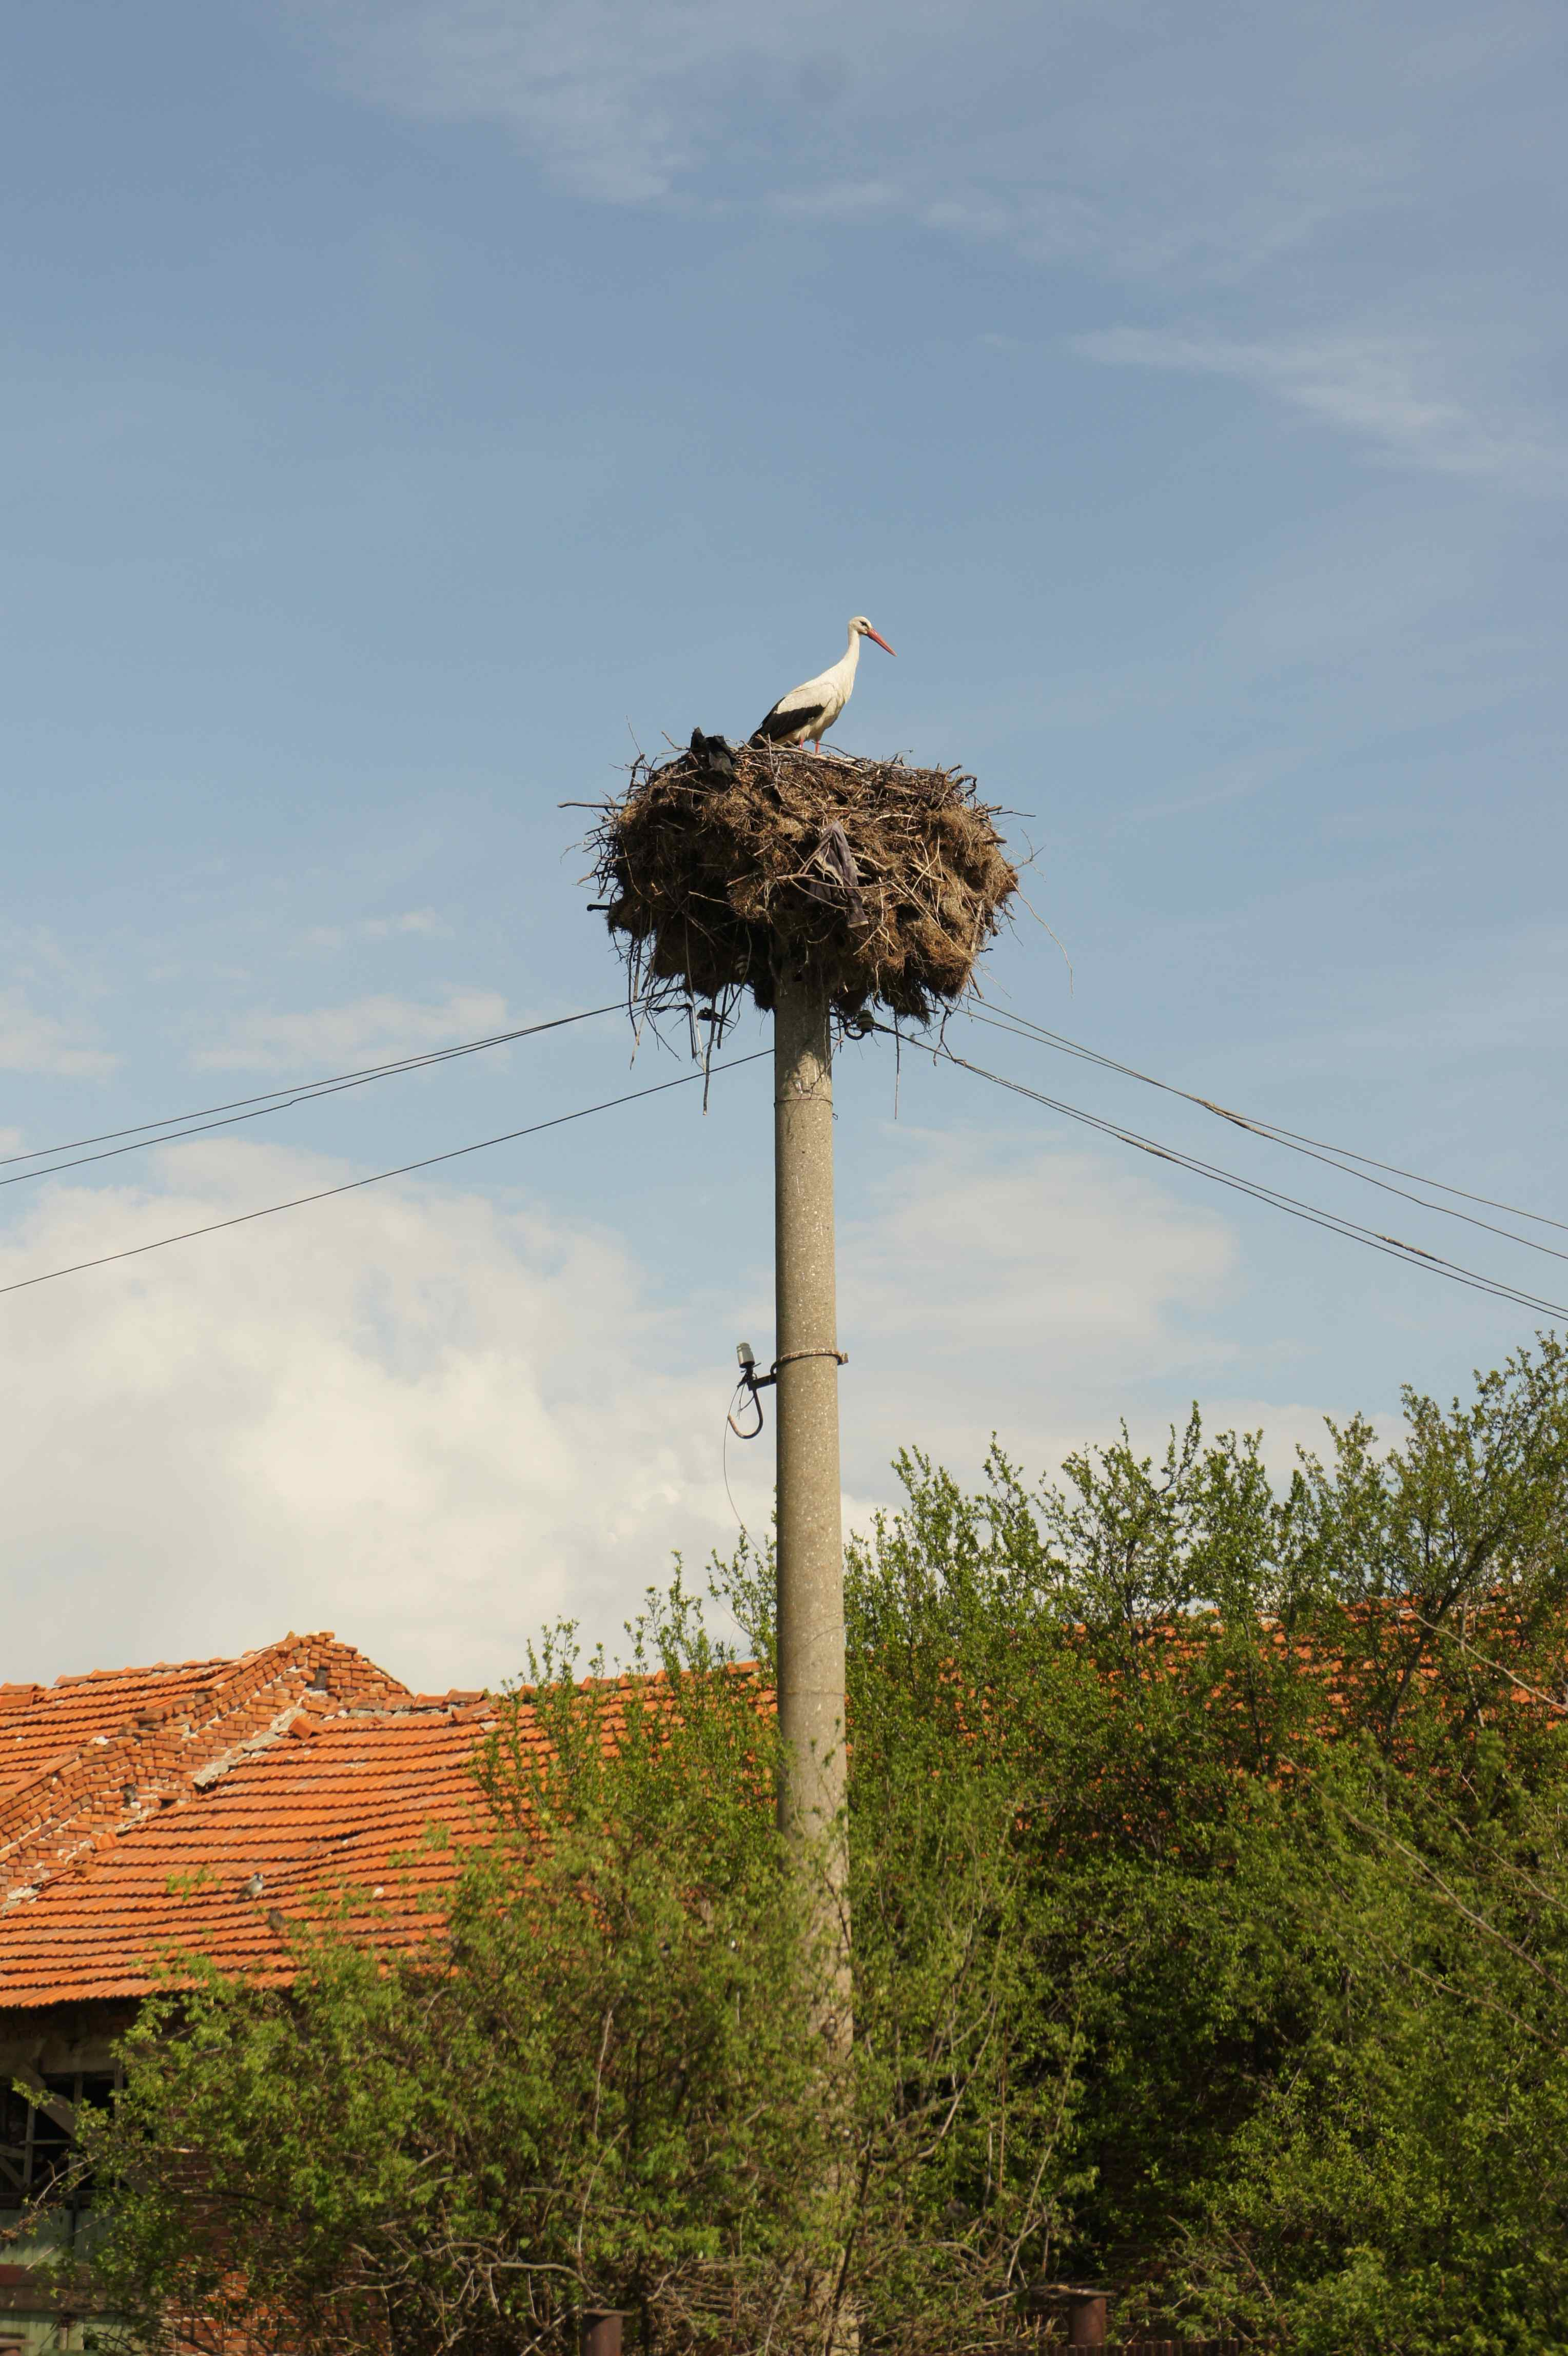 Stork in its nest in a Bulgarian village